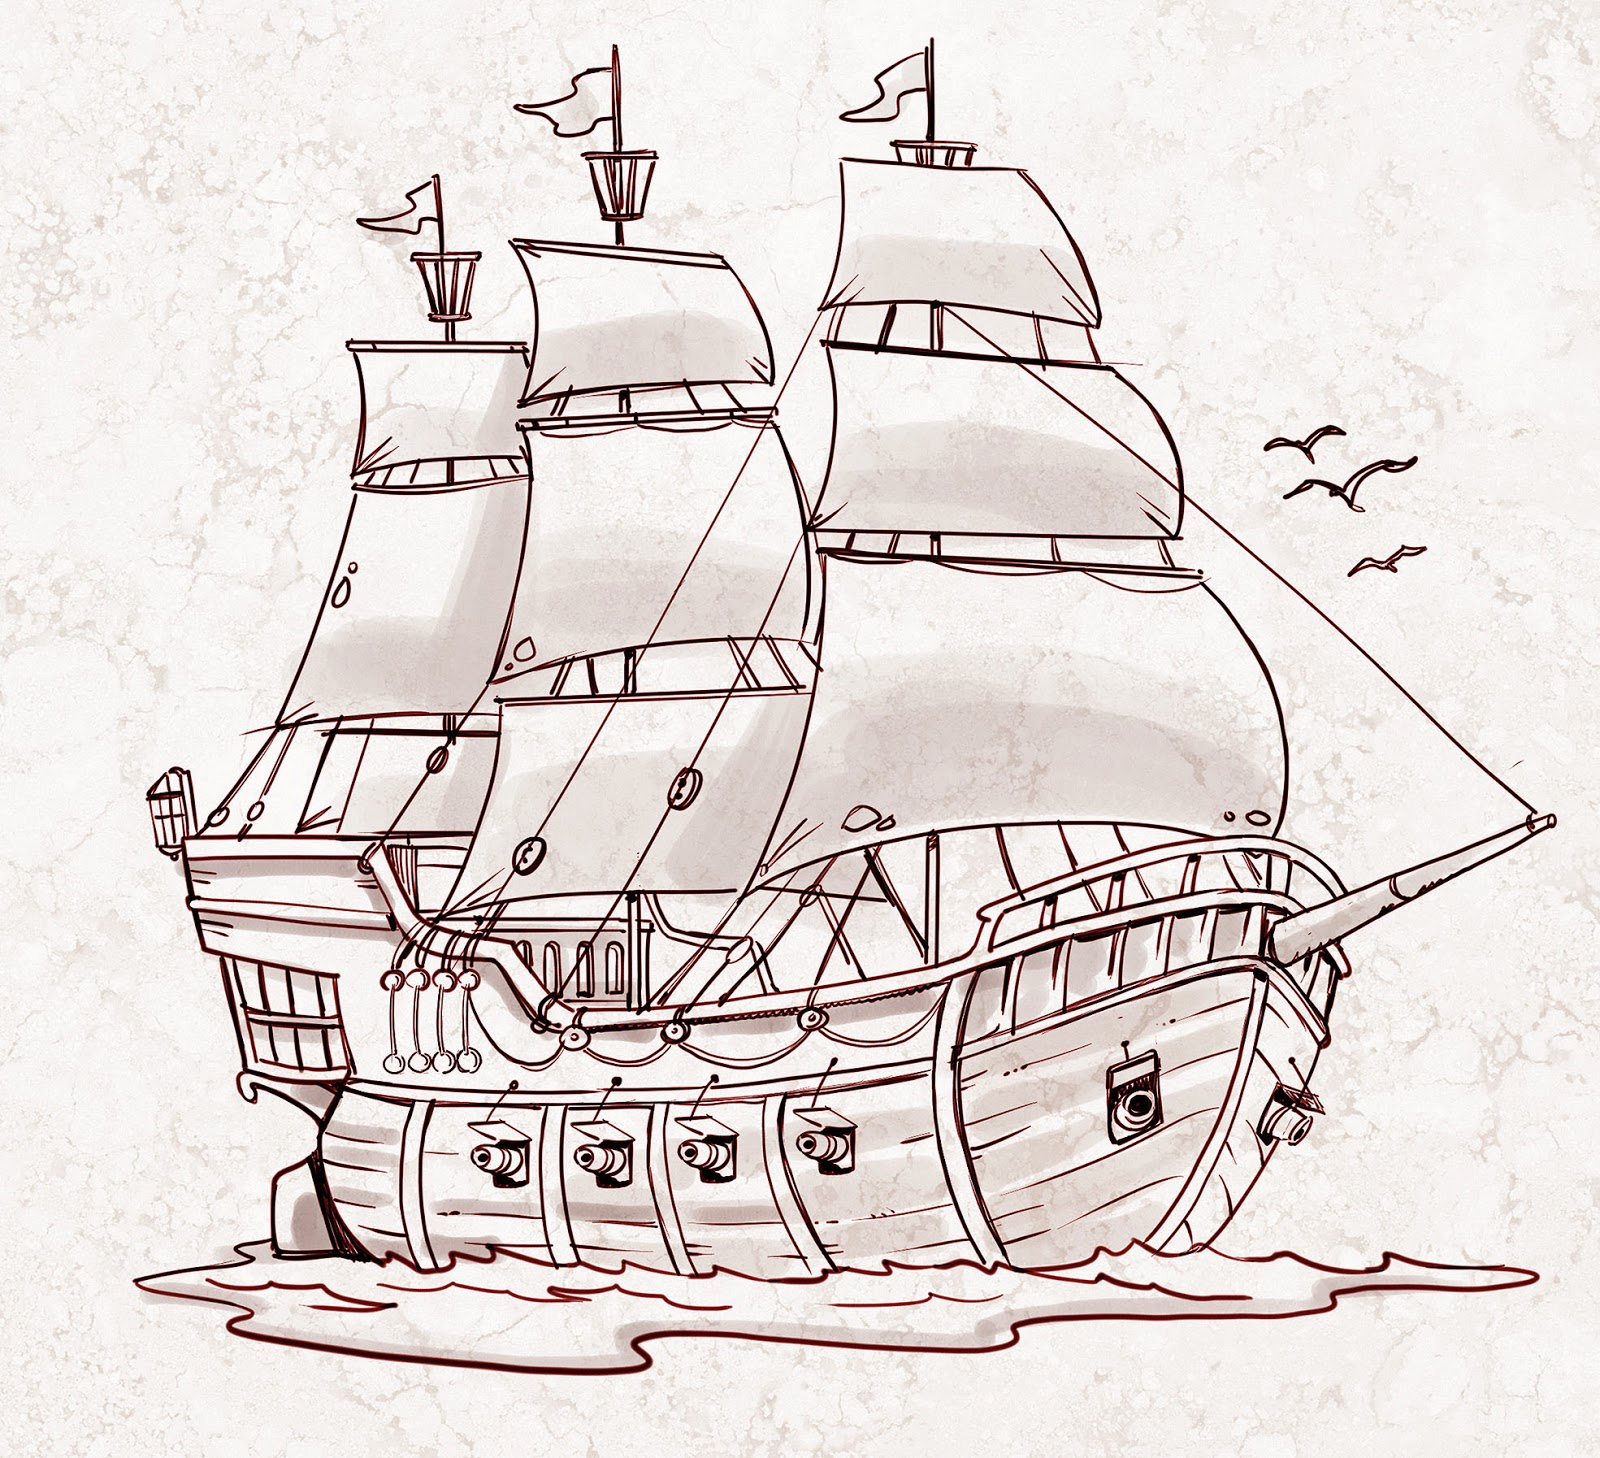 Pirate ship drawing - photo#1